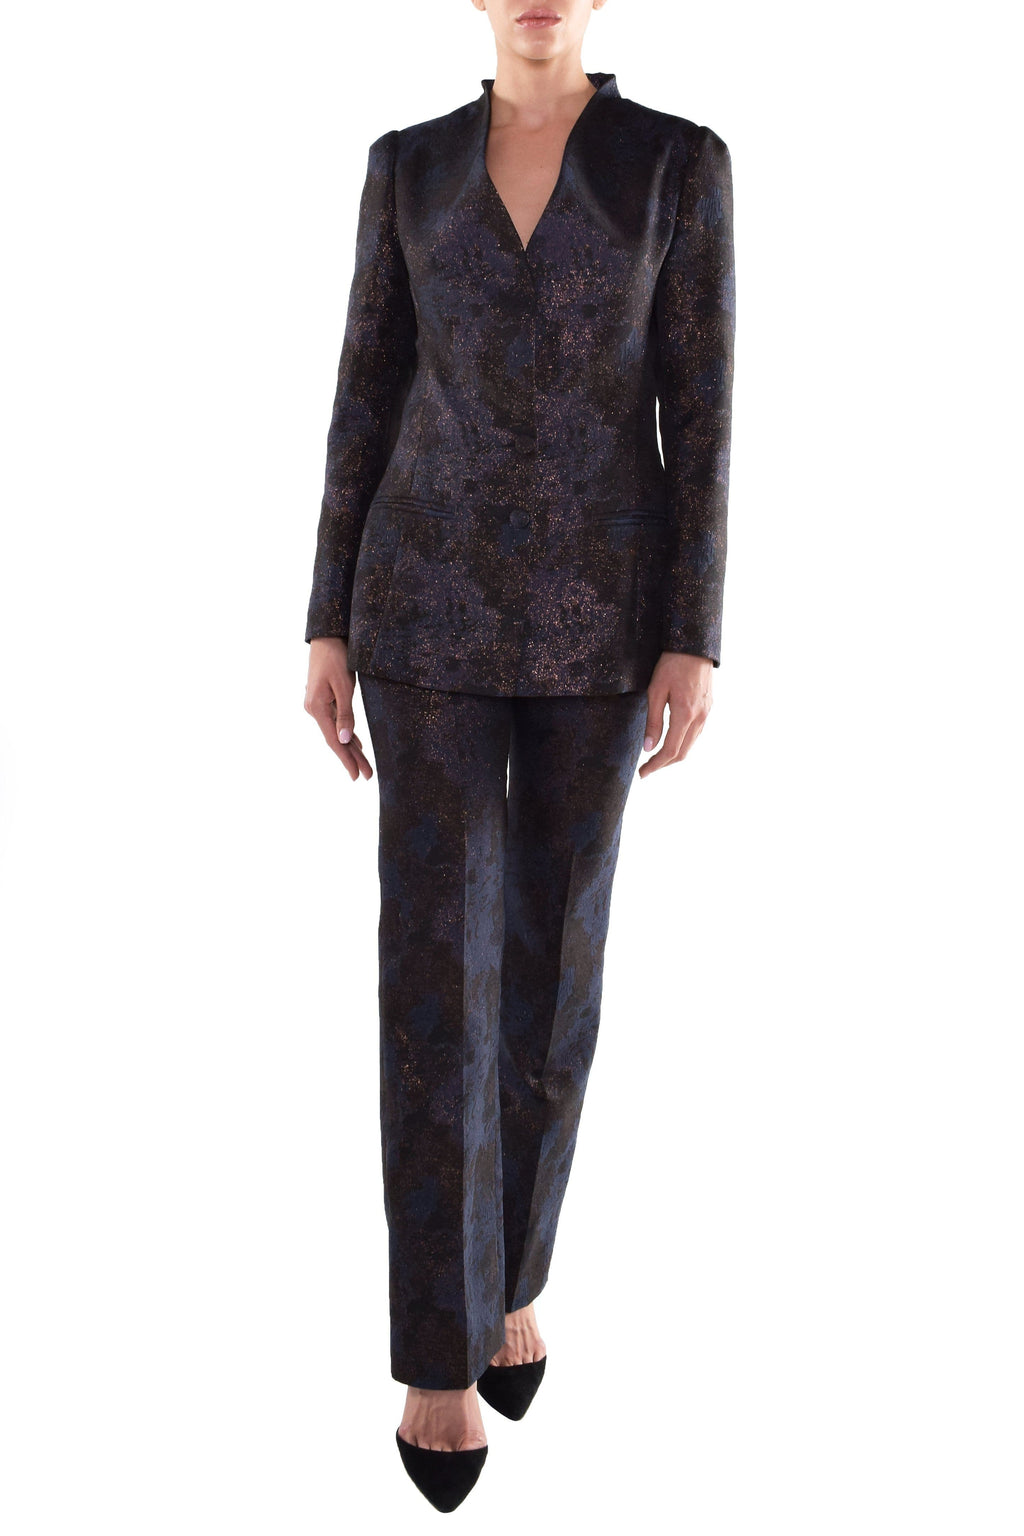 Navy Glittery Pants & Jacket Suit - BYTRIBUTE